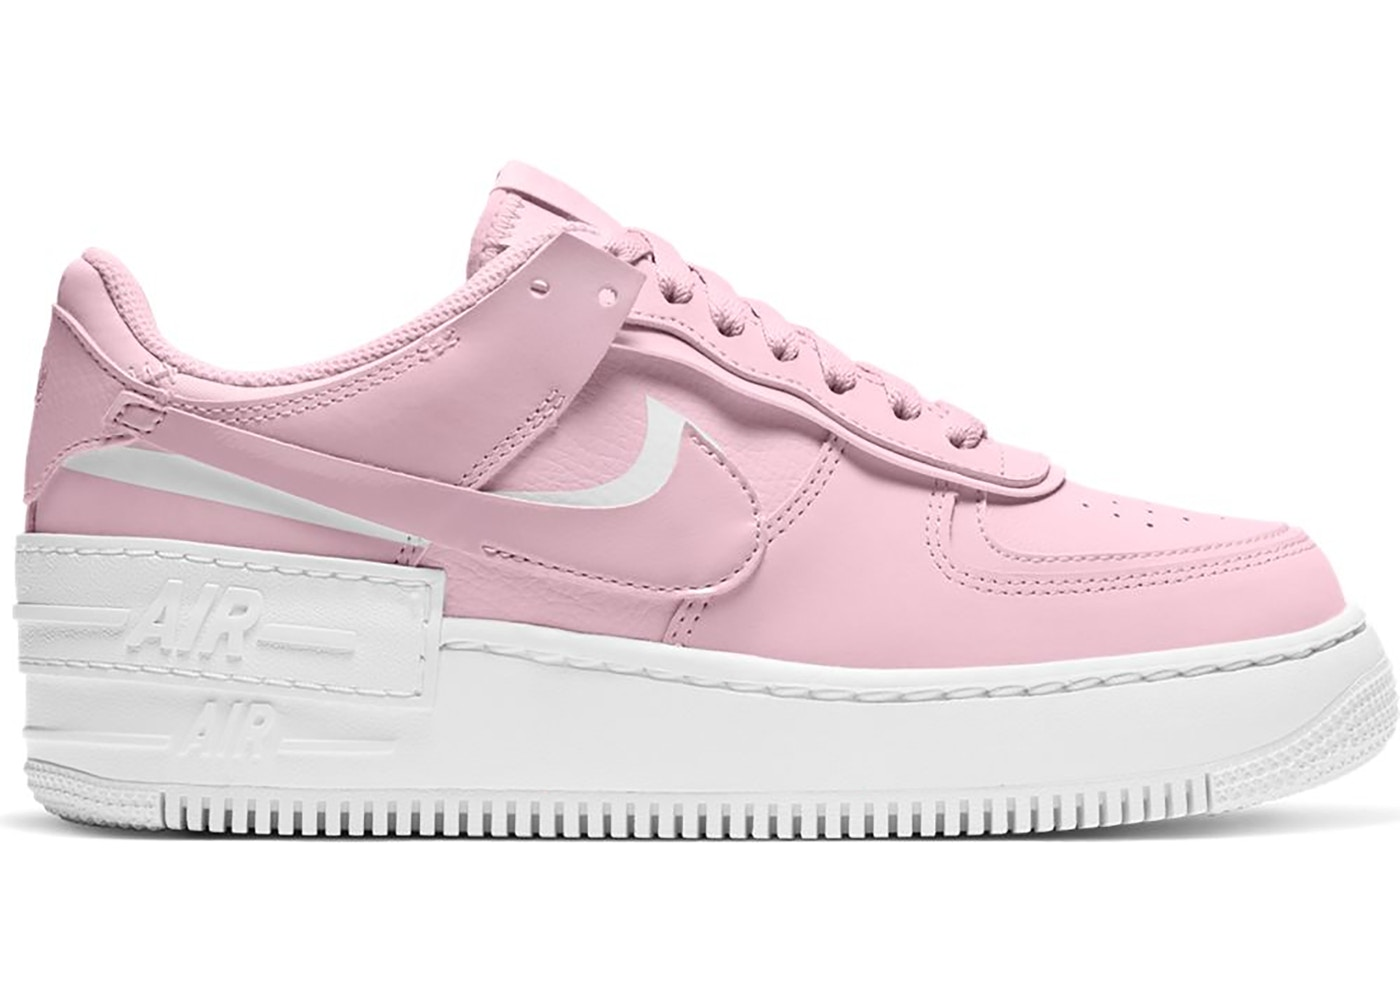 Nike Air Force 1 Shadow Pink Foam W Cv3020 600